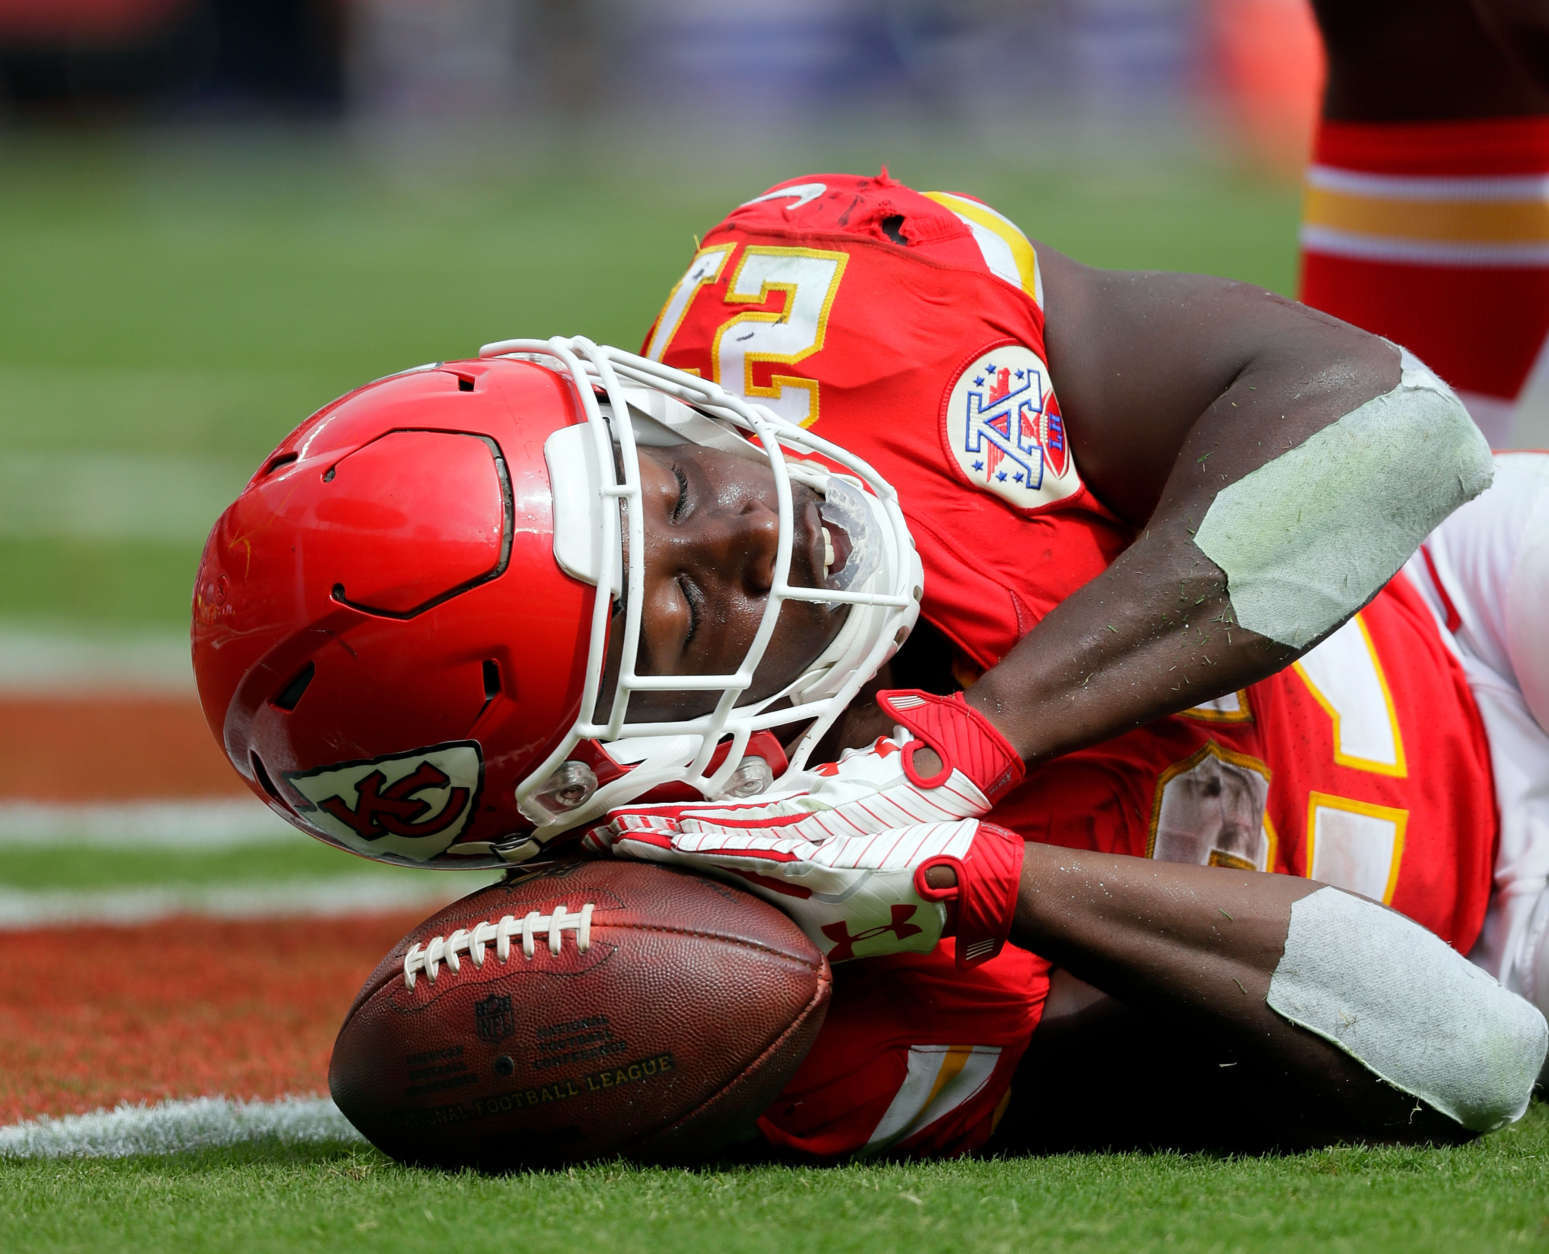 KANSAS CITY, MO - SEPTEMBER 17:  Running back Kareem Hunt #27 of the Kansas City Chiefs celebrates after scoring a touchdown during the game against the Philadelphia Eagles at Arrowhead Stadium on September 17, 2017 in Kansas City, Missouri.  (Photo by Jamie Squire/Getty Images)